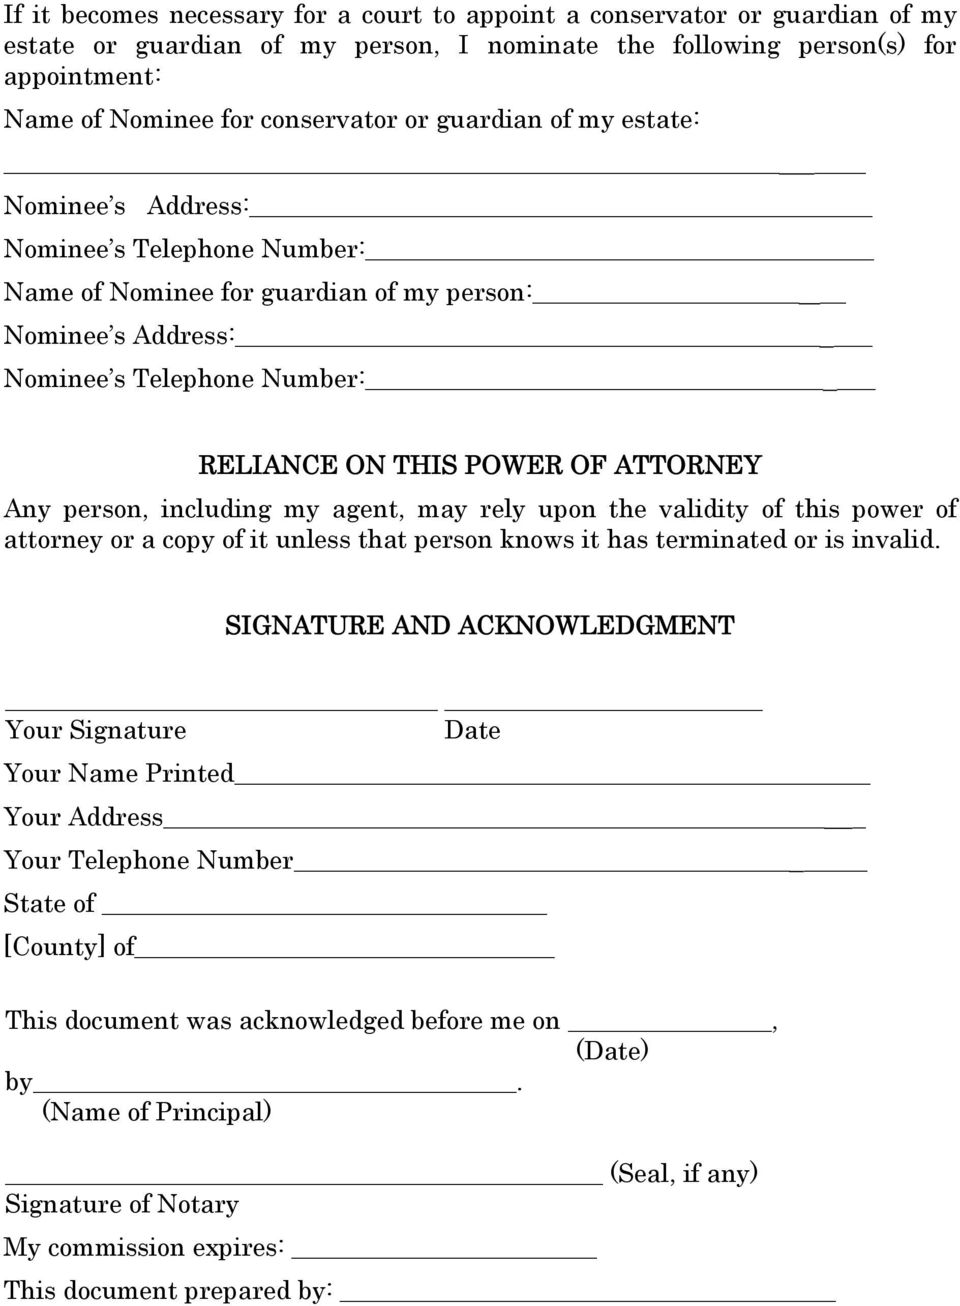 person, including my agent, may rely upon the validity of this power of attorney or a copy of it unless that person knows it has terminated or is invalid.